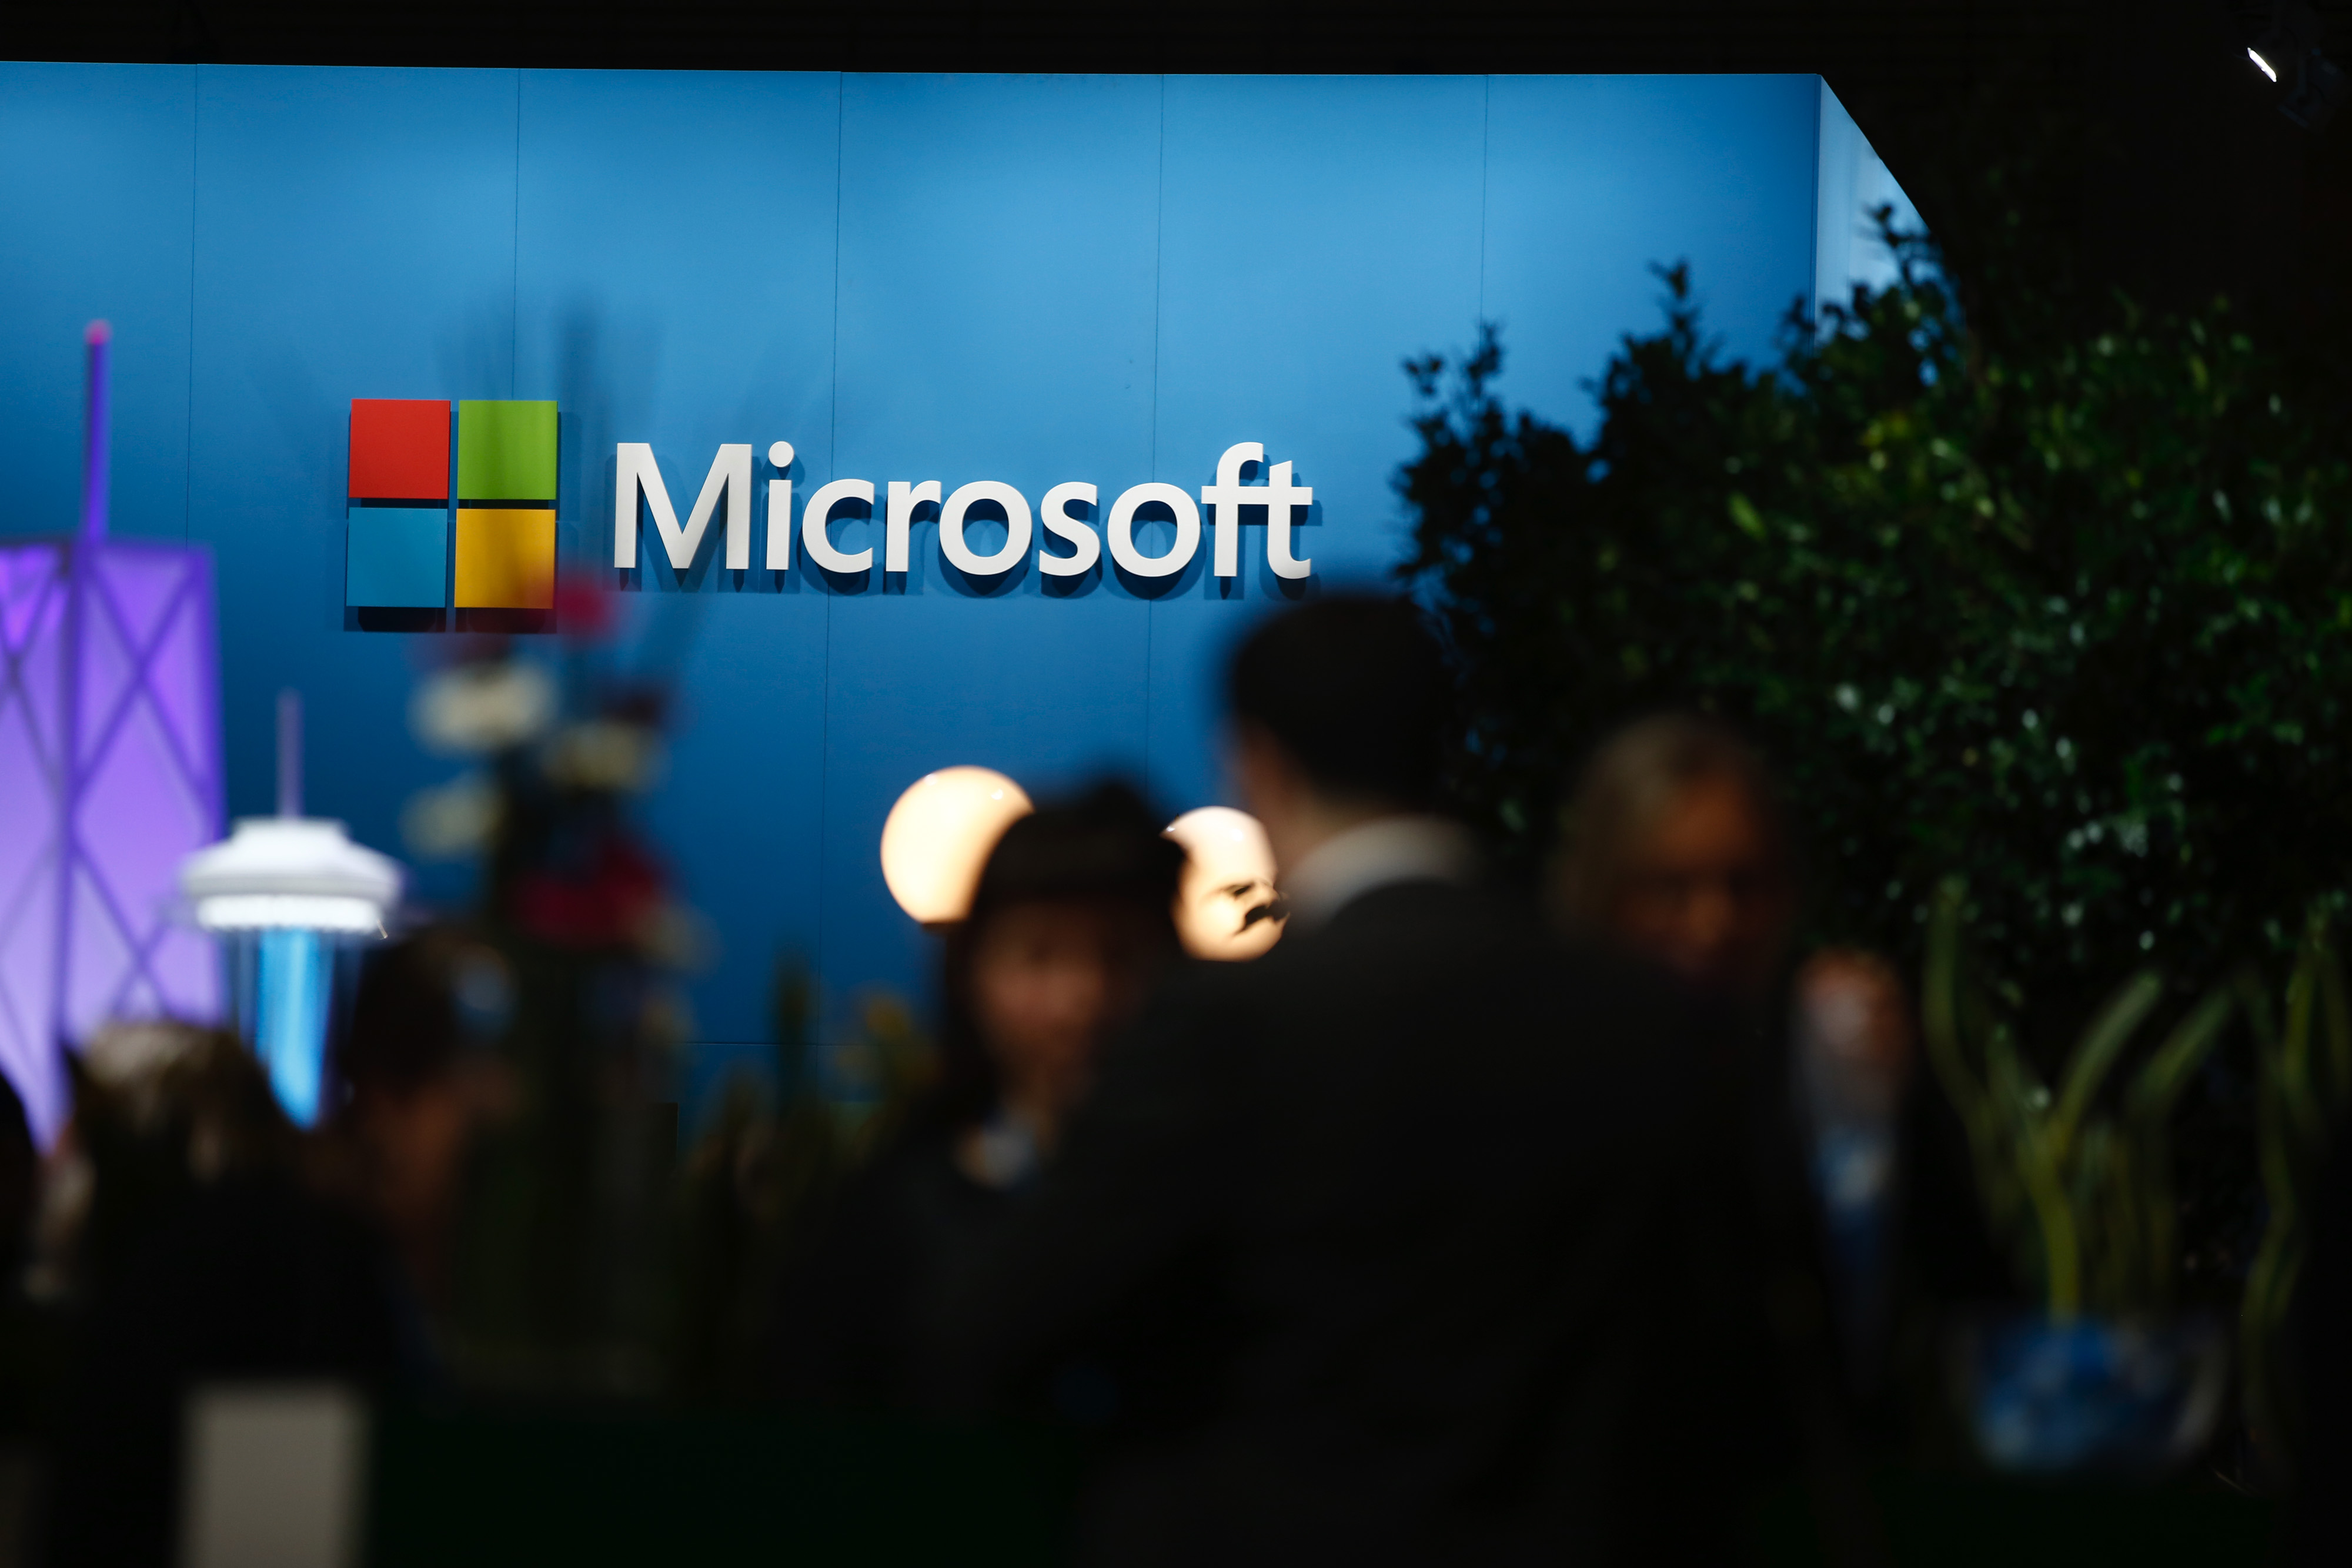 Microsoft attempts to spin its role in counterfeiting case